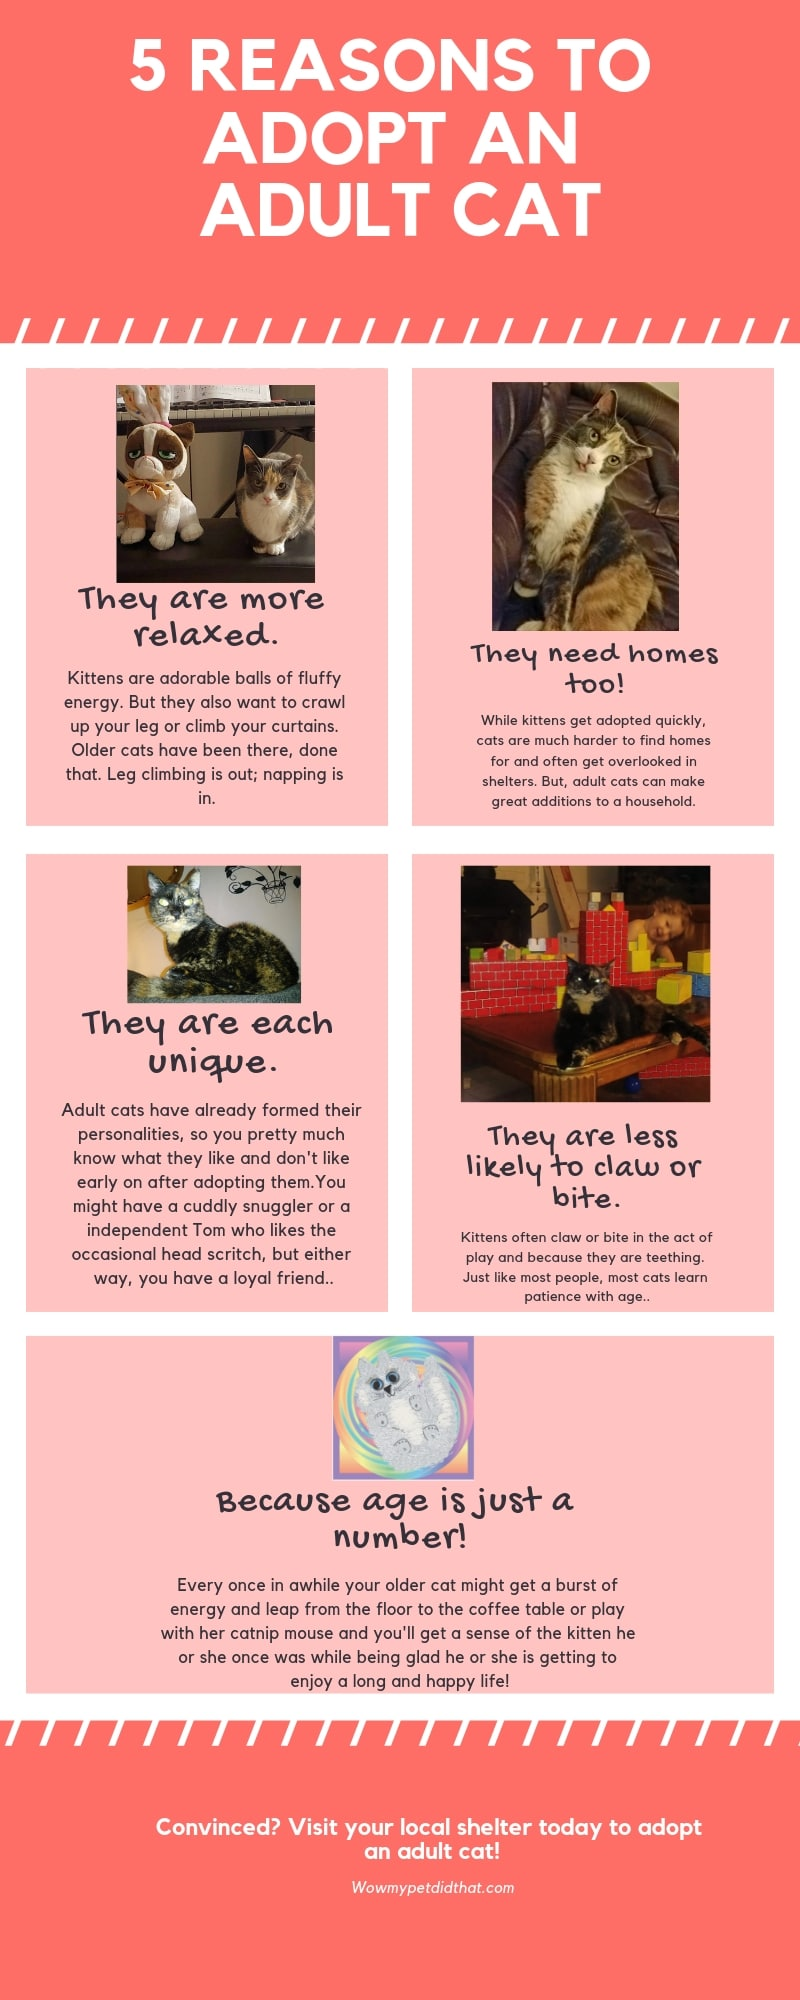 5 reasons to adopt an adult cat infographic